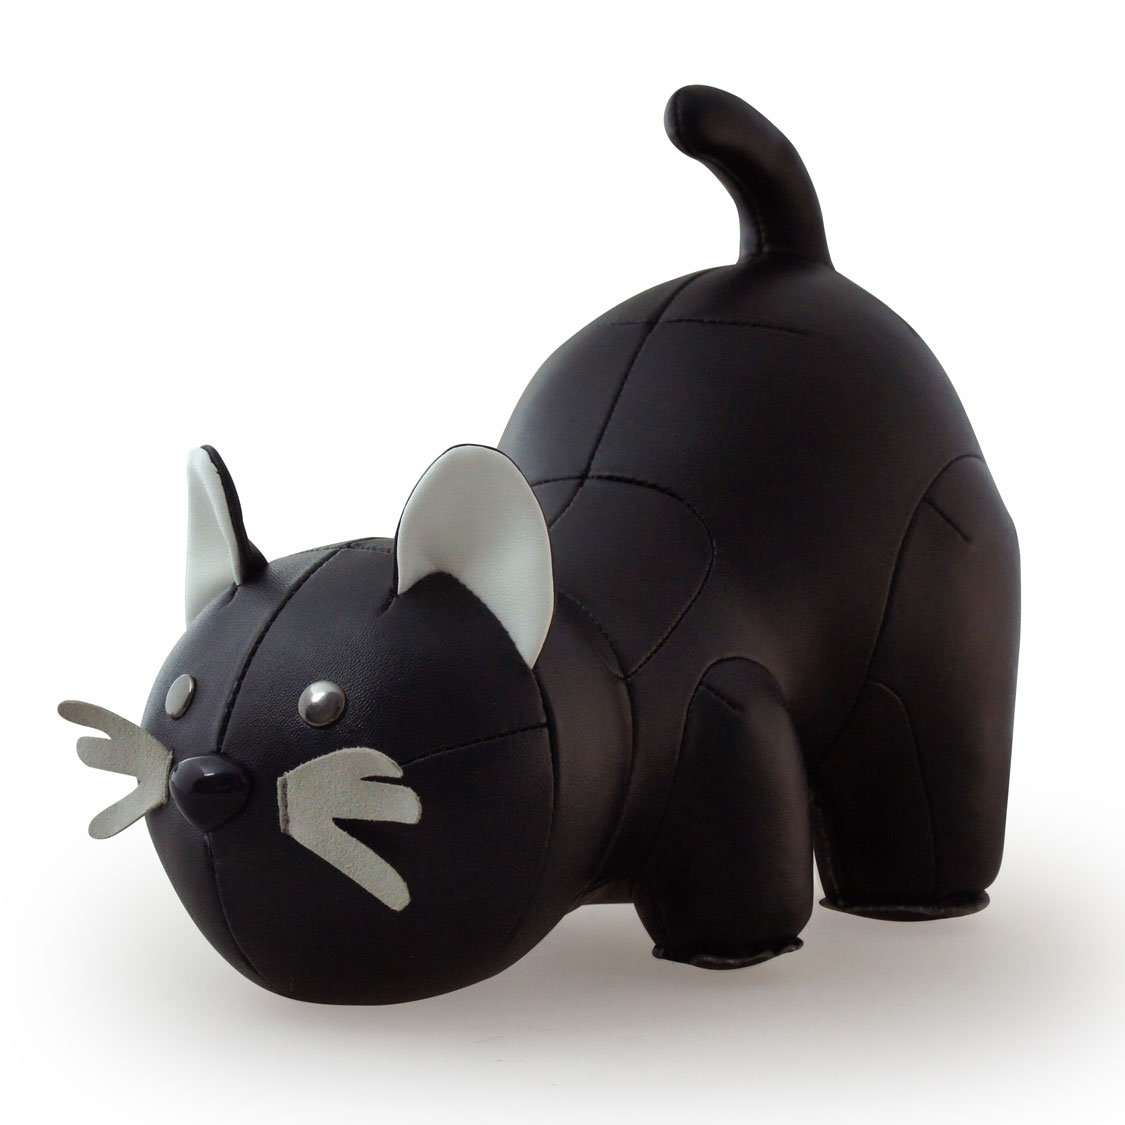 Zuny Cat Animal Bookend - Black